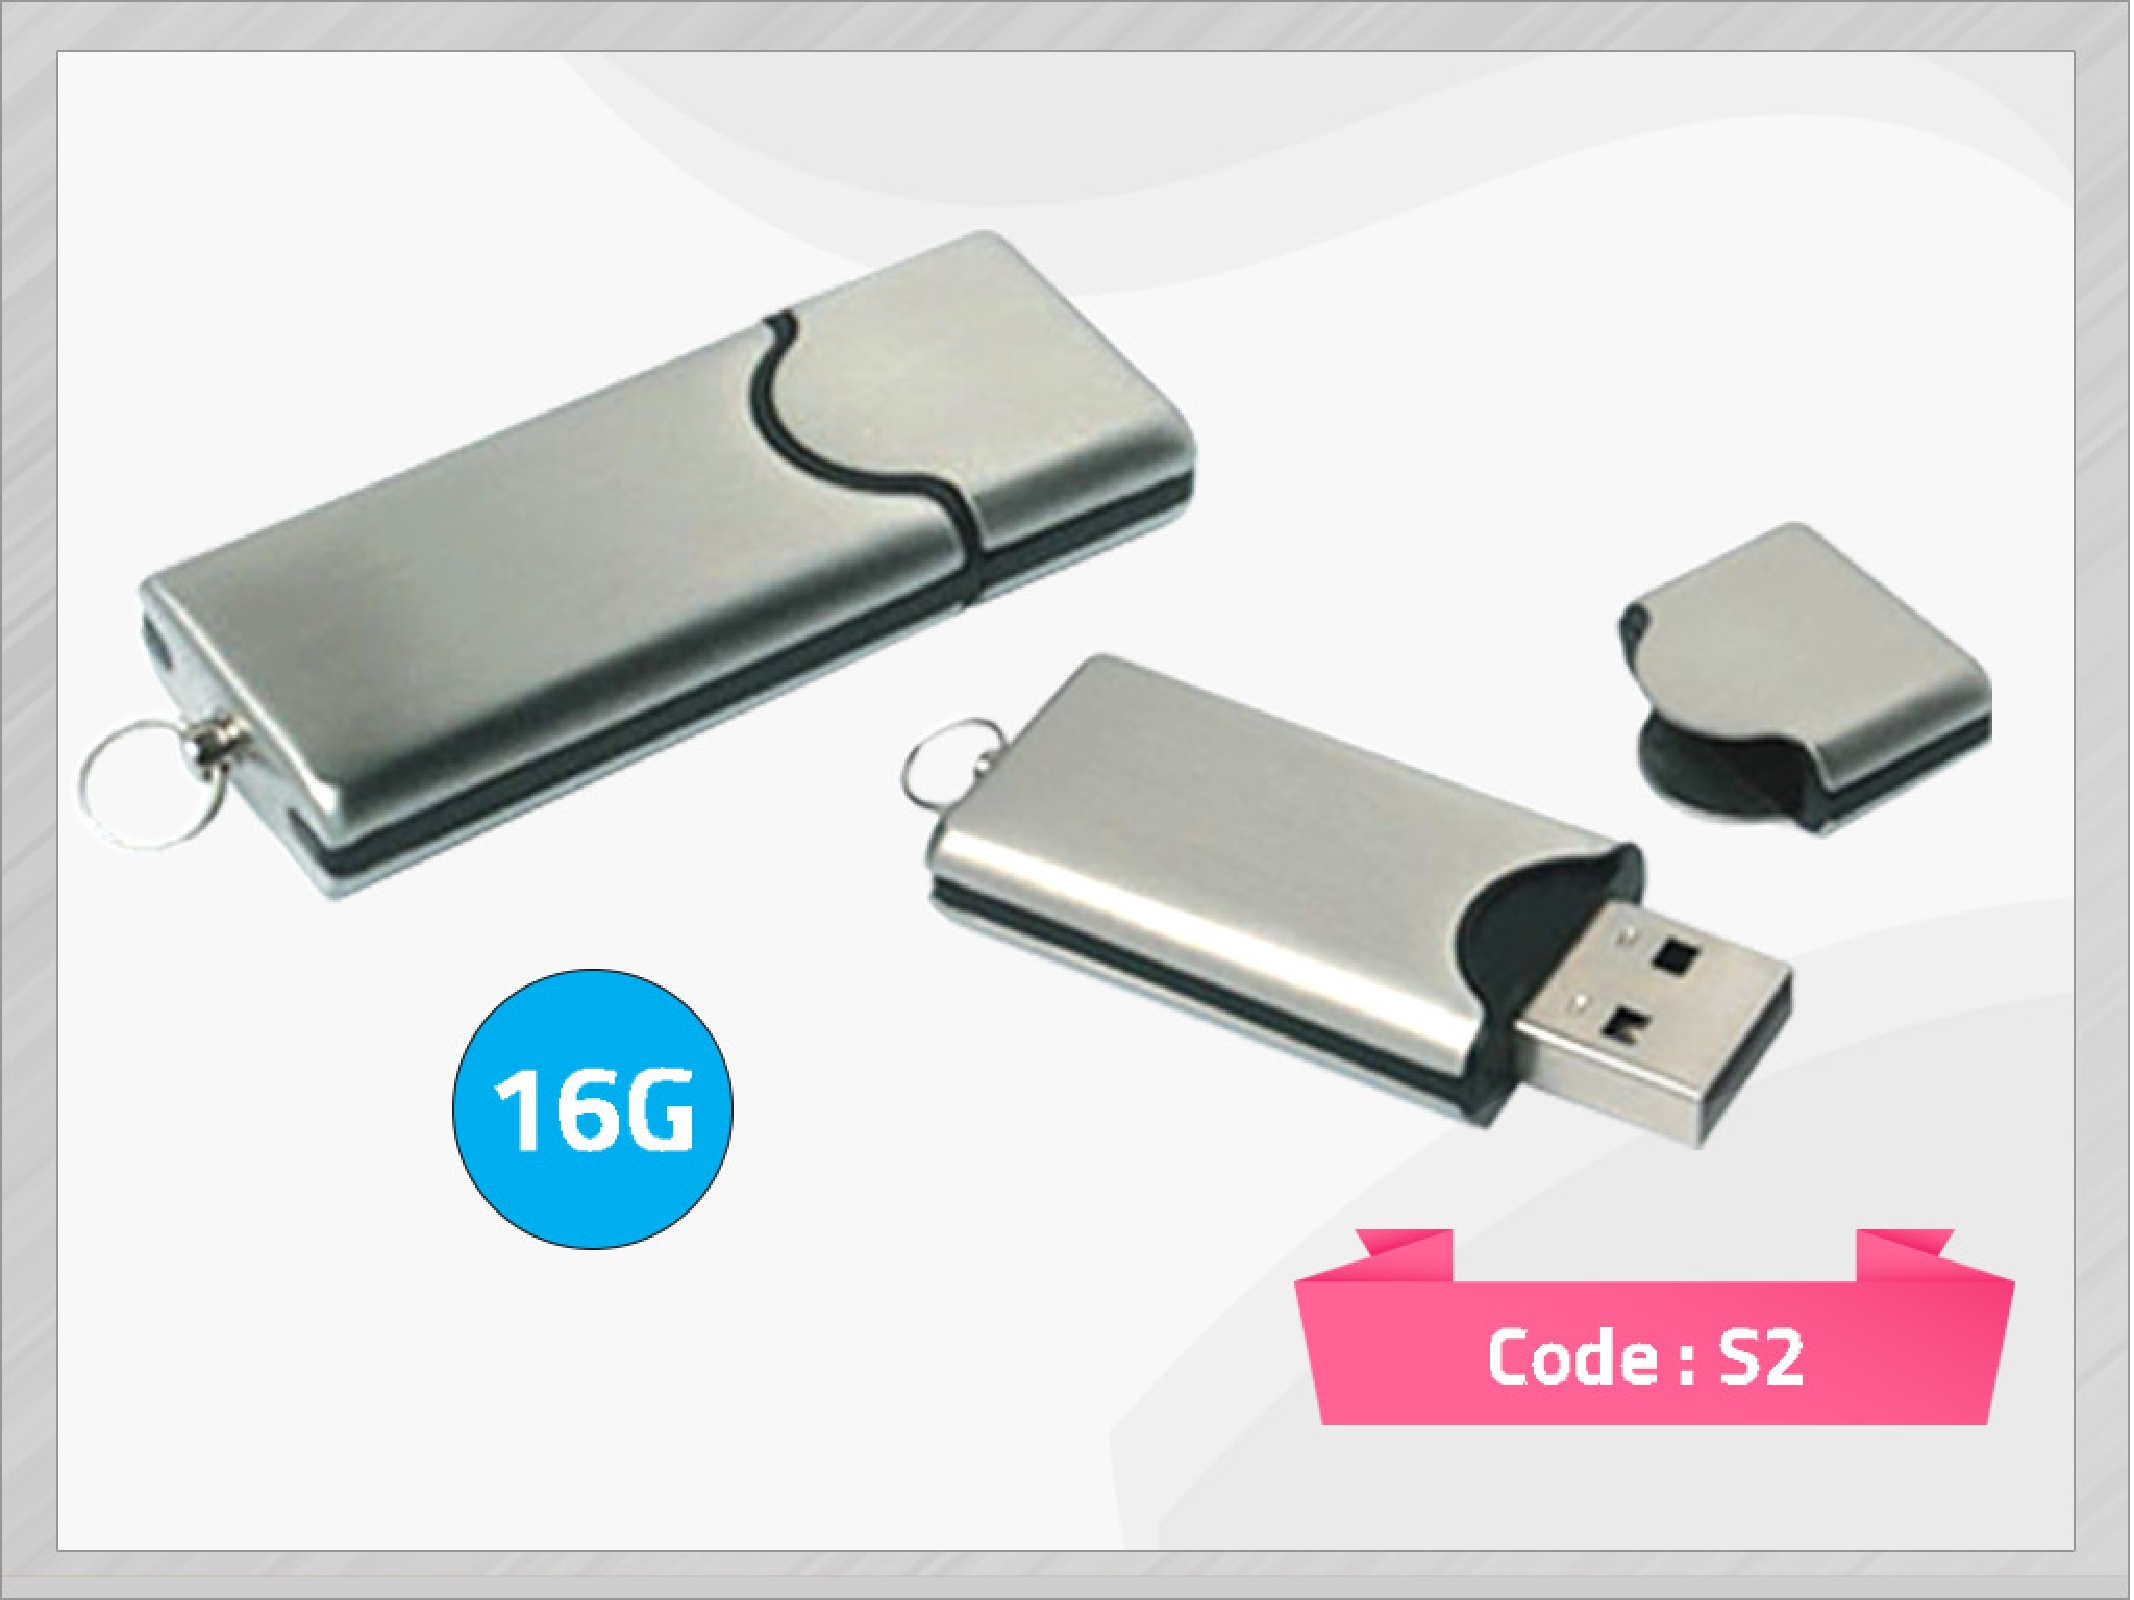 3-usb-flash-34-new_page-0020